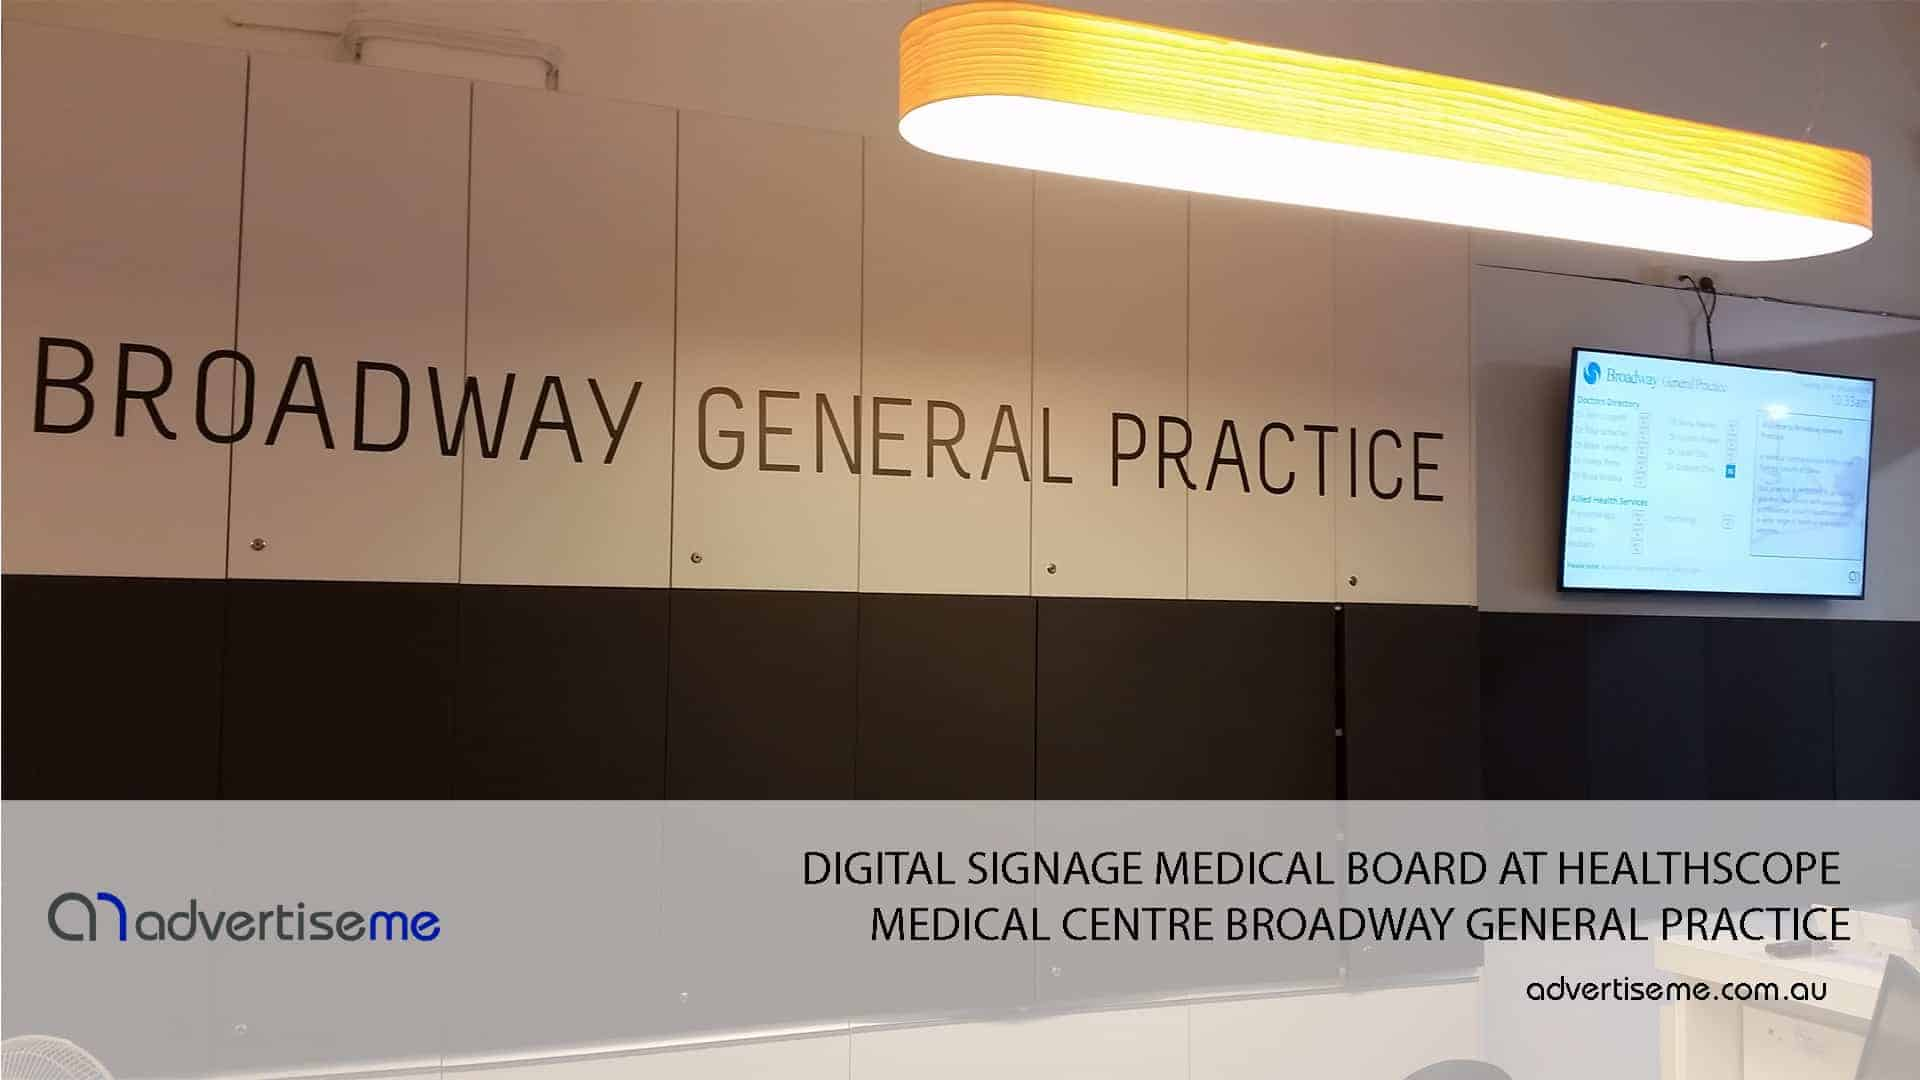 DIGITAL-SIGNAGE-MEDICAL-BOARD-AT-HEALTHSCOPE-MEDICAL-CENTRE-BROADWAY-GENERAL-PRACTICE-1